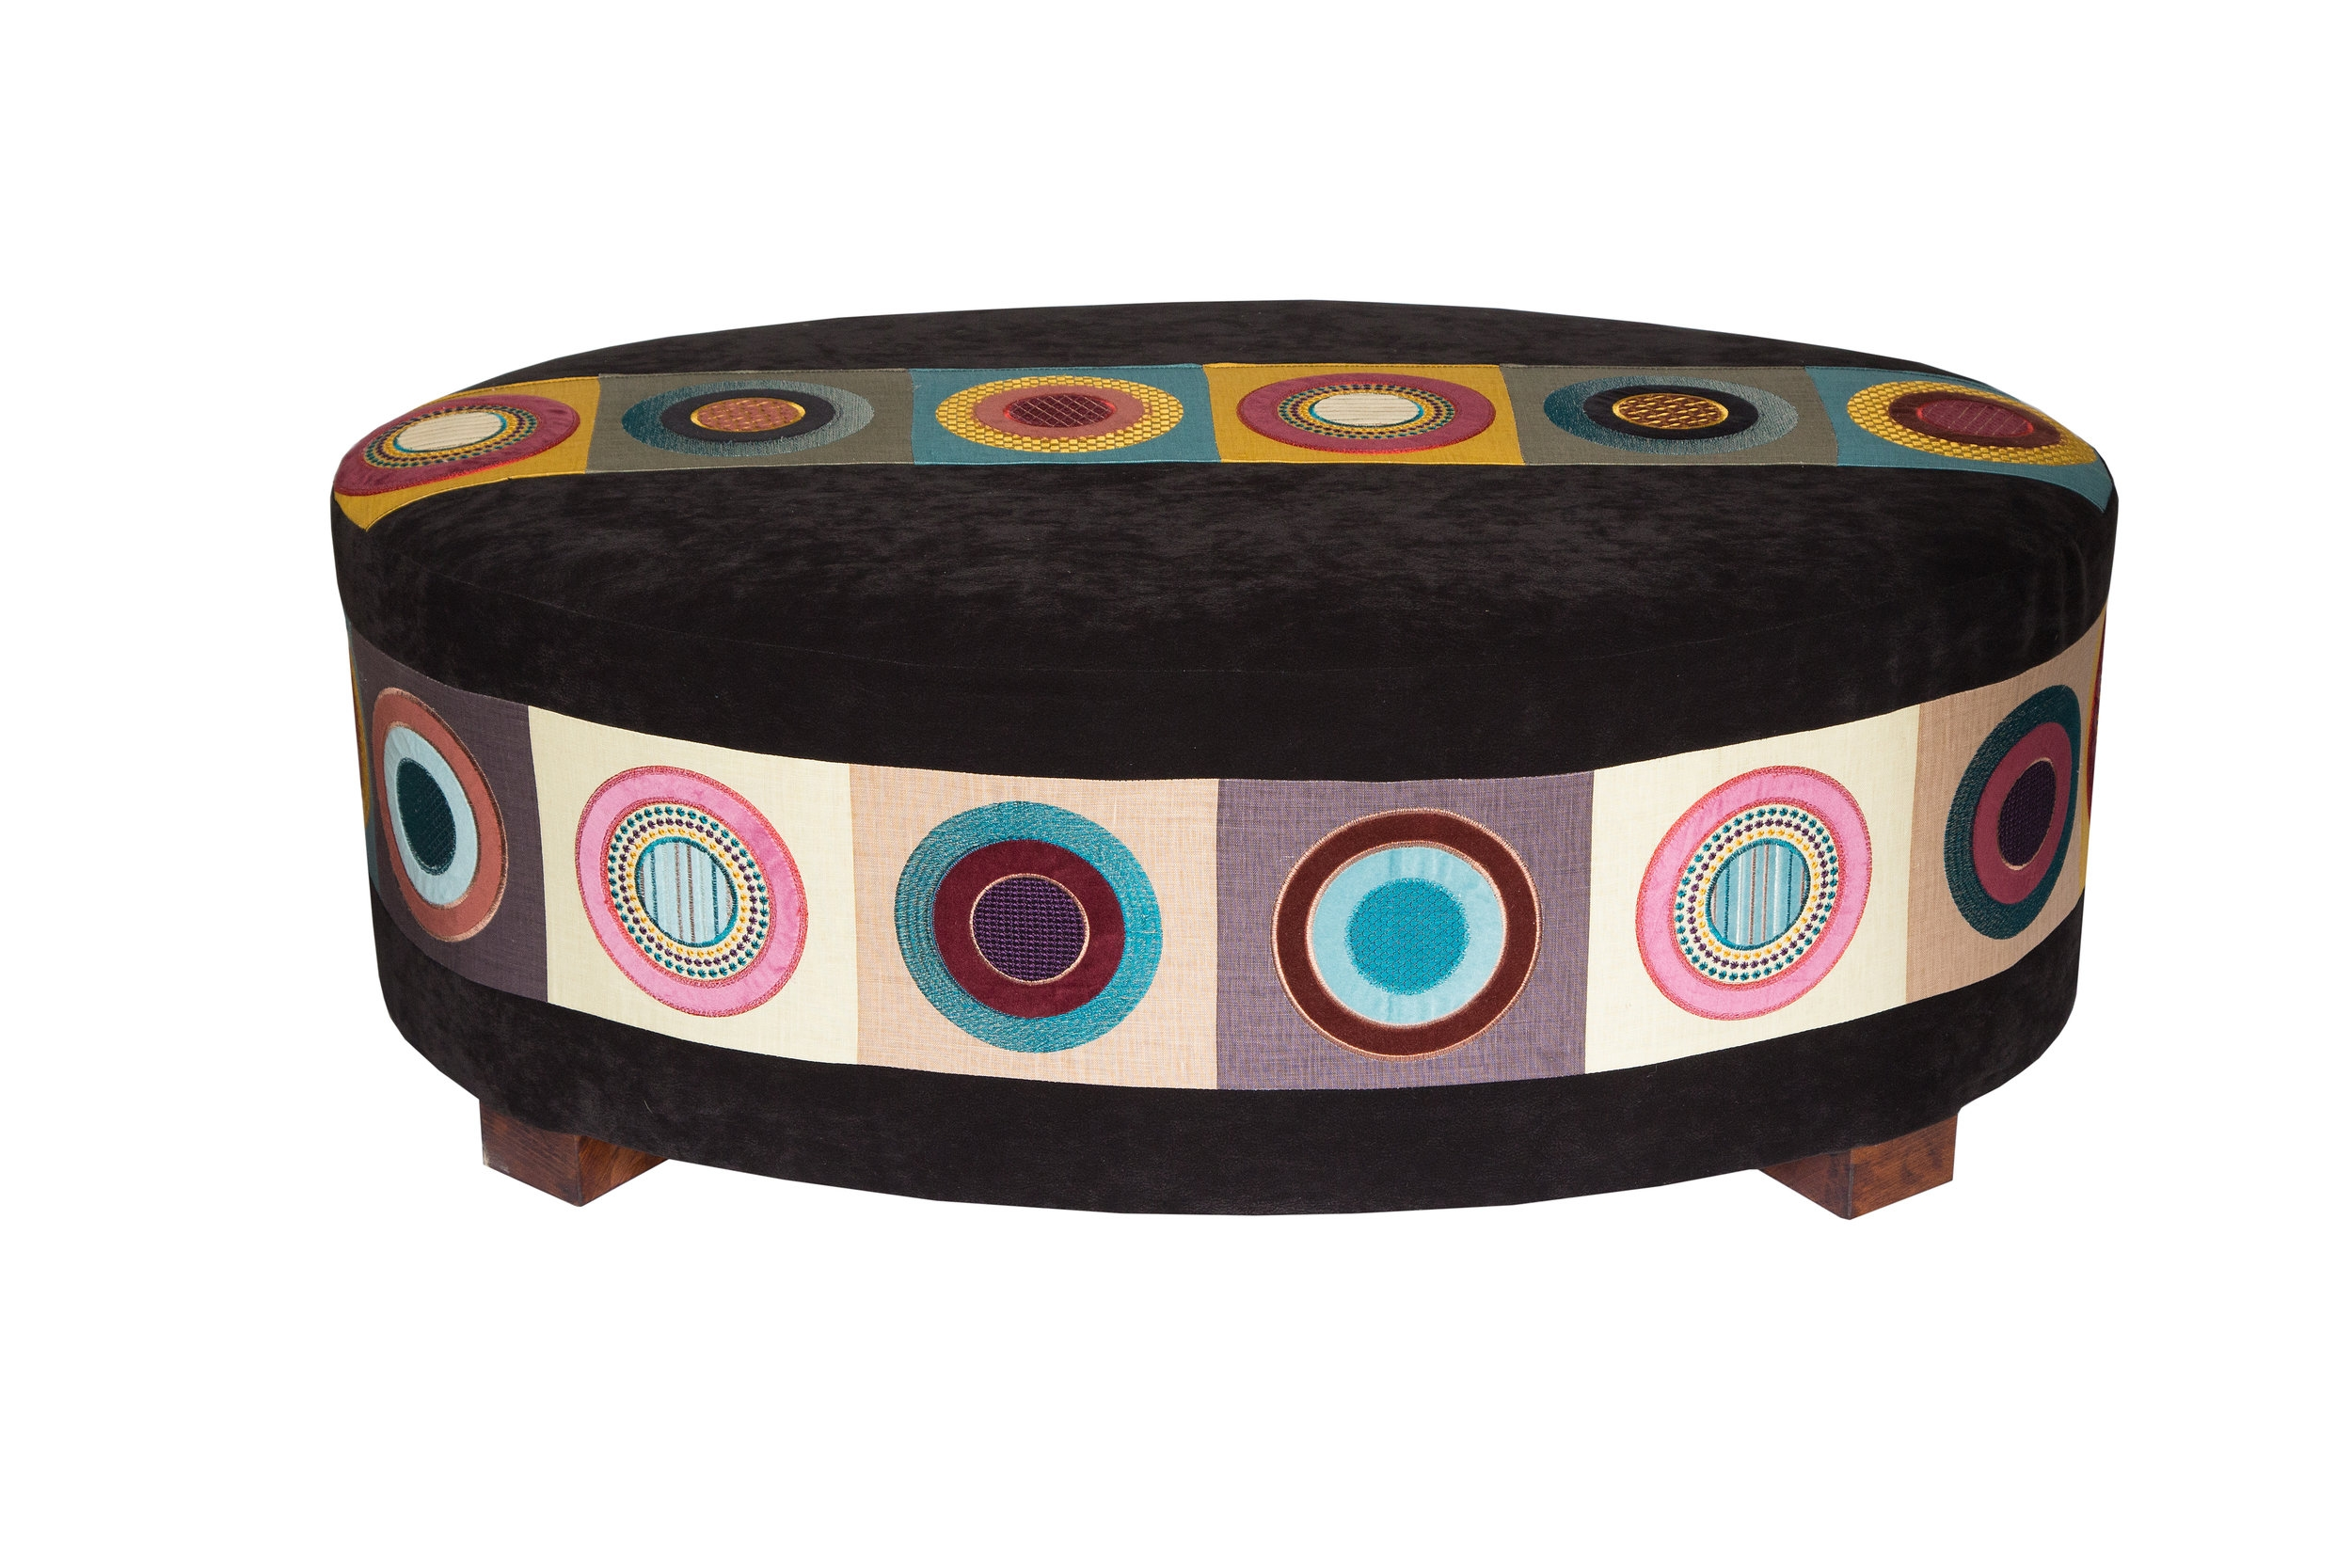 bespoke oval table stool in mulberry